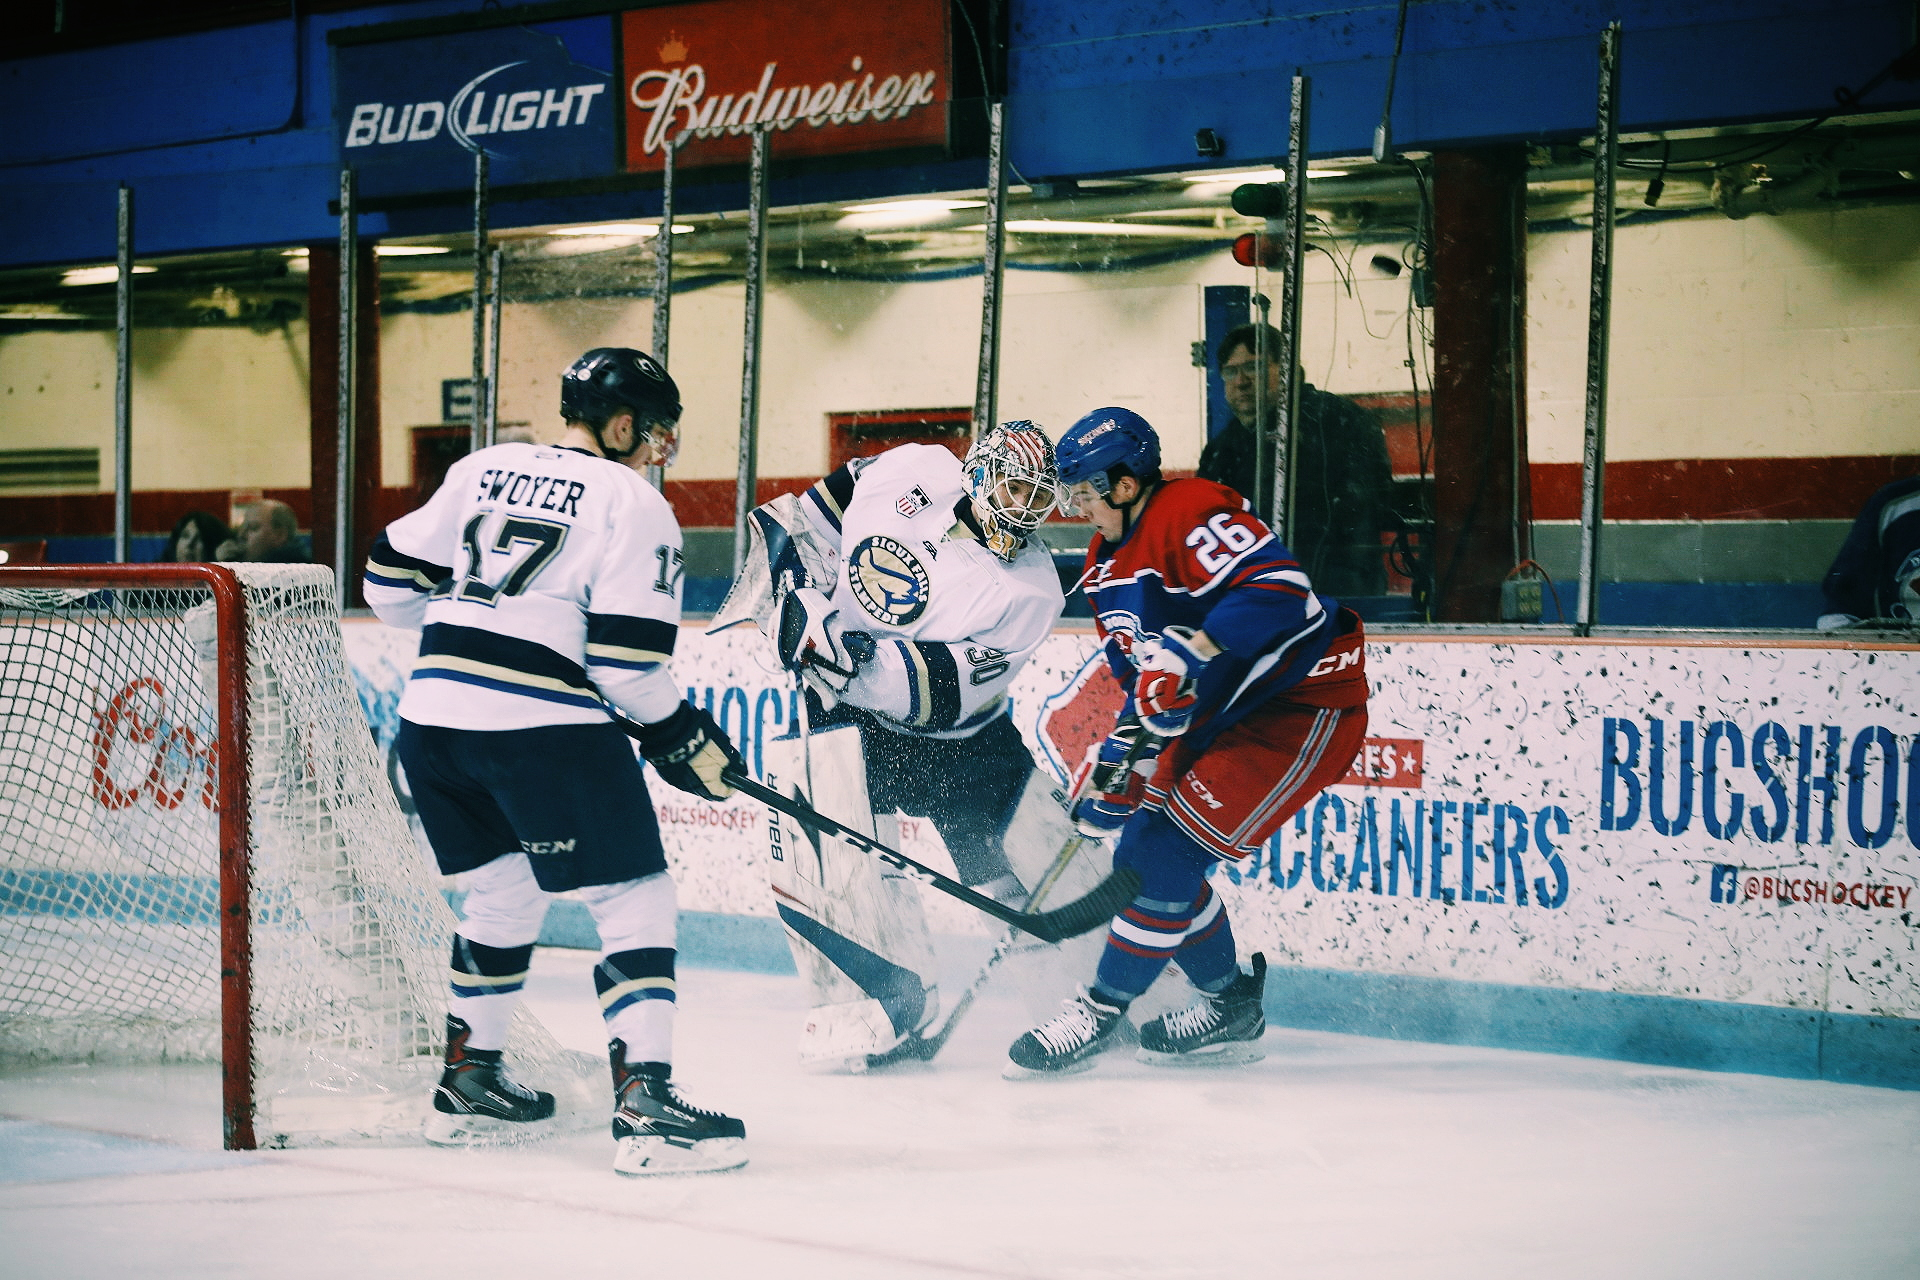 Des Moines Buccaneers Hockey Game Banner